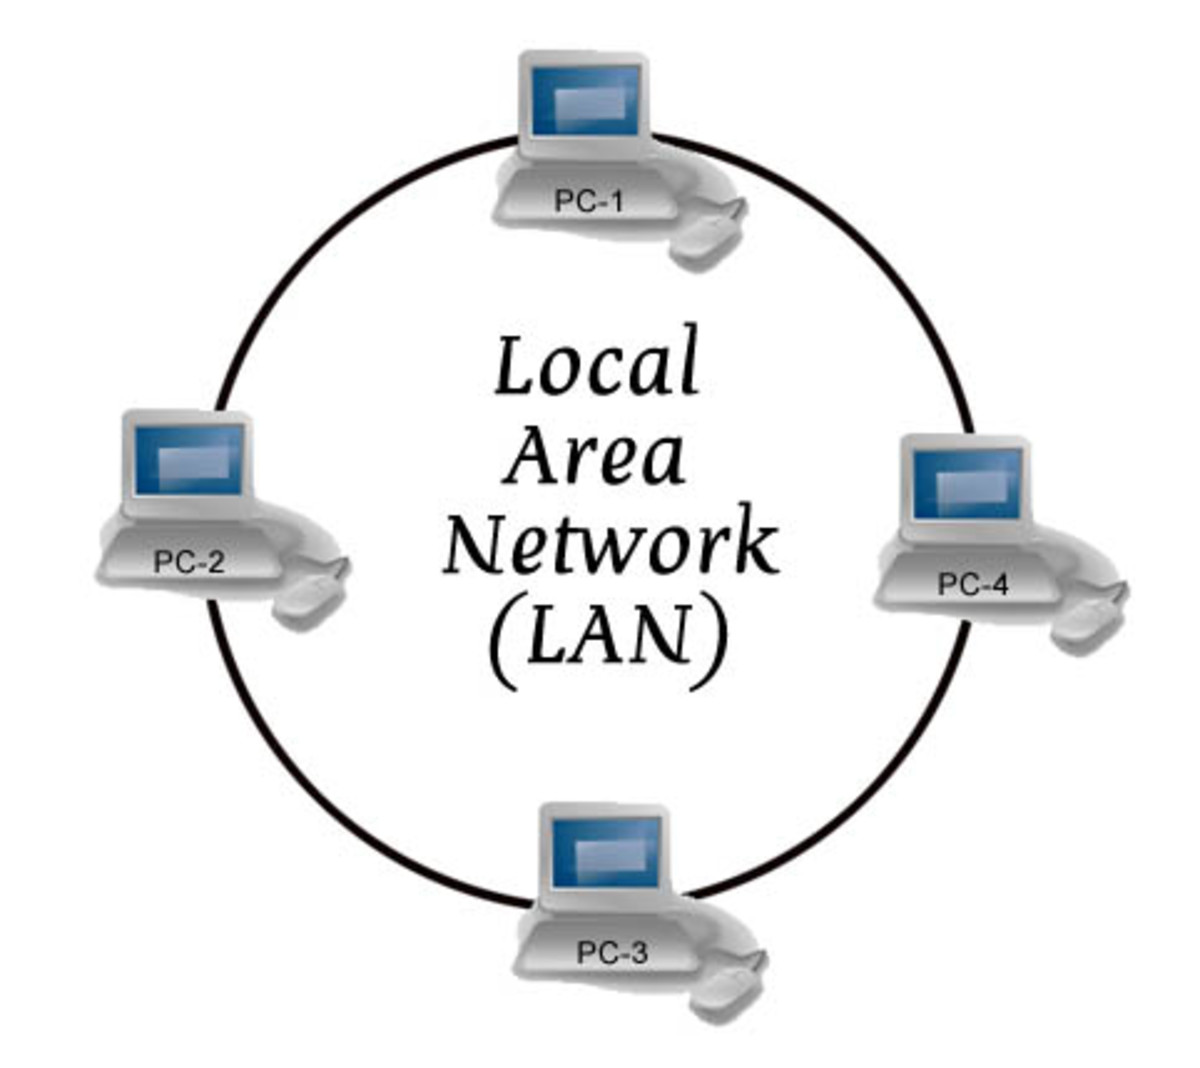 What is a Local Area Network (LAN)?